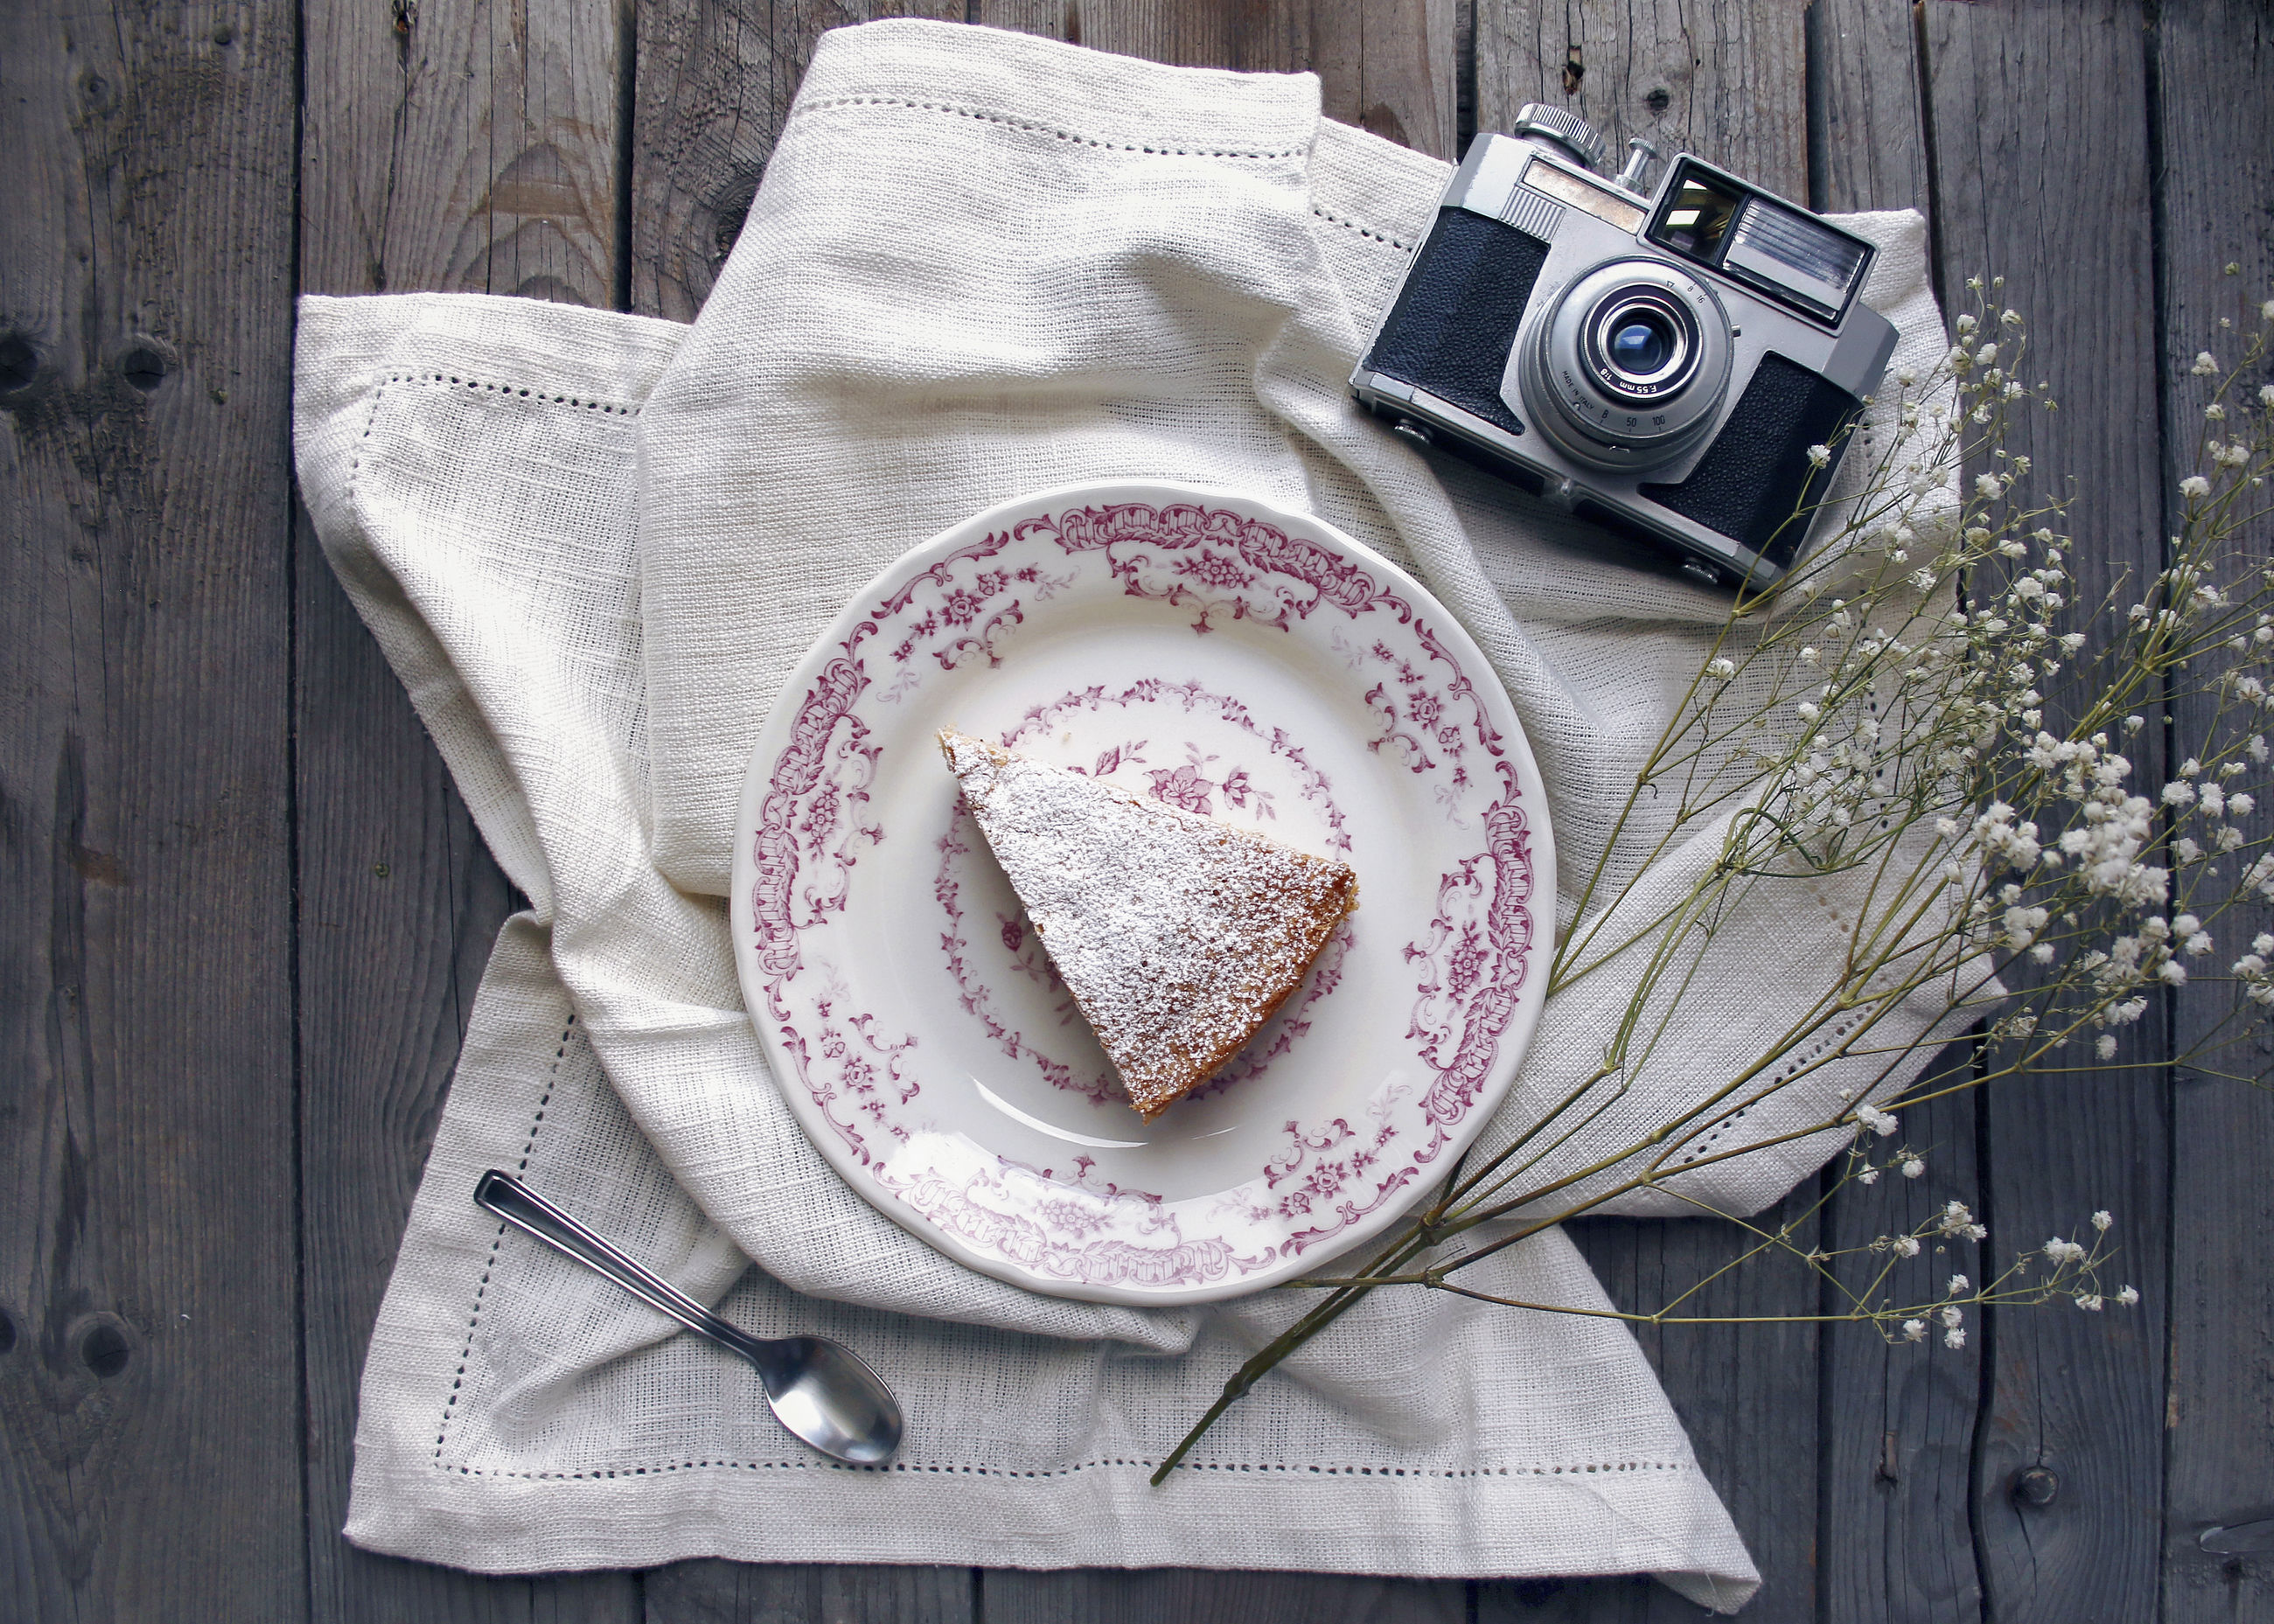 Directly above shot of cake slice with camera and plant on table